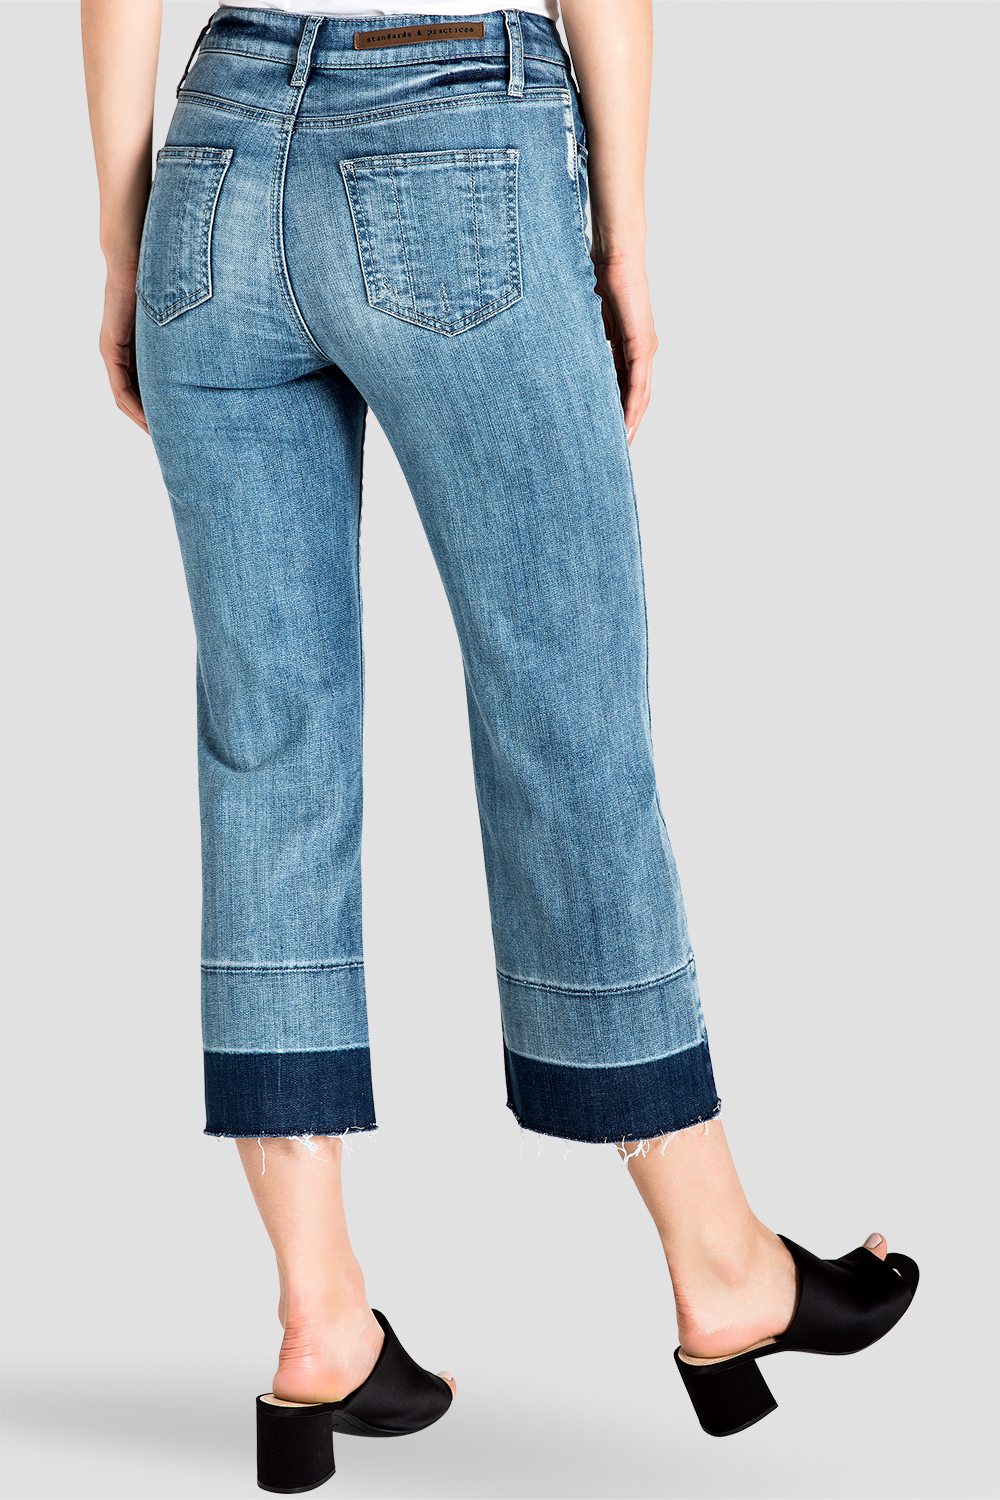 Standards & Practices Women's Frayed Cropped Jeans